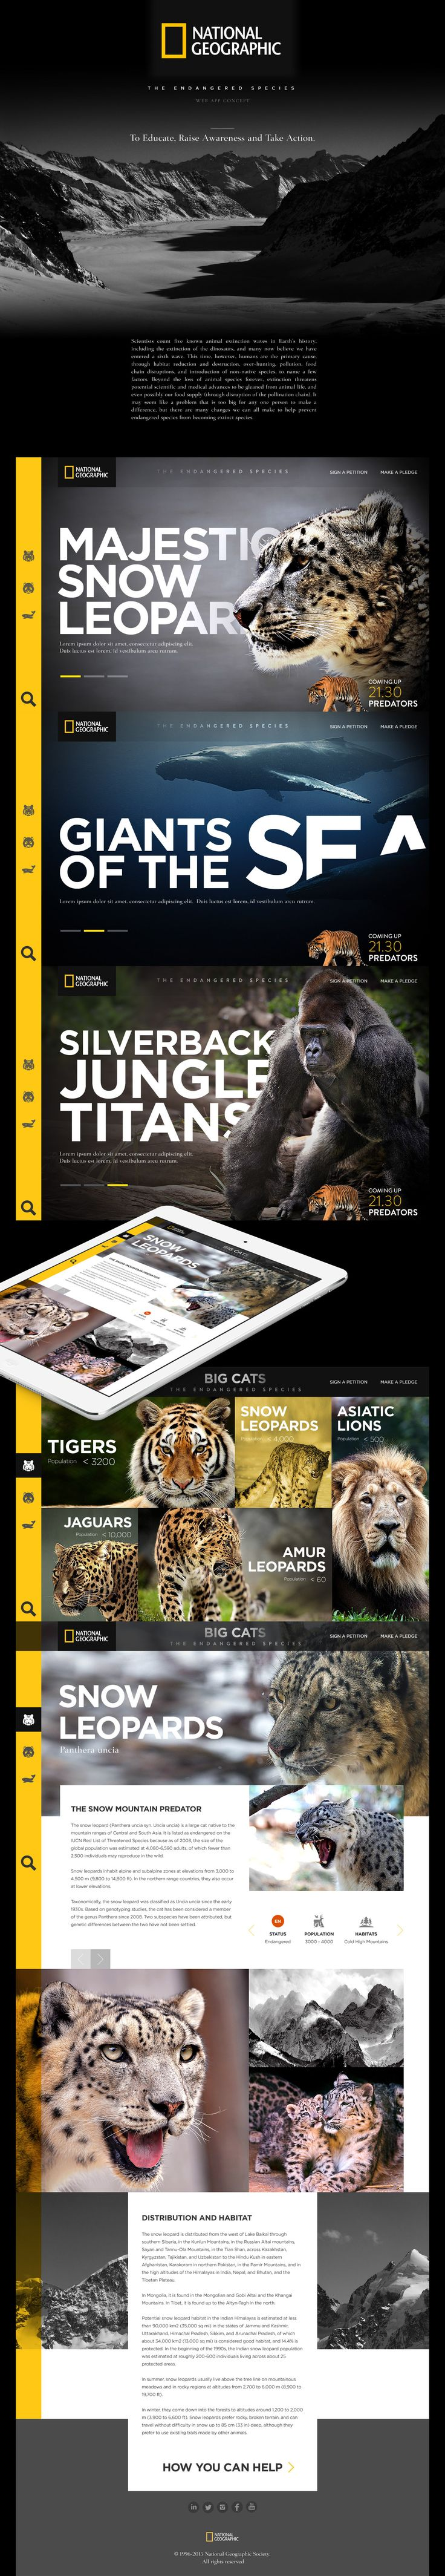 National Geographic - The Endangered Species by Daniel Ng